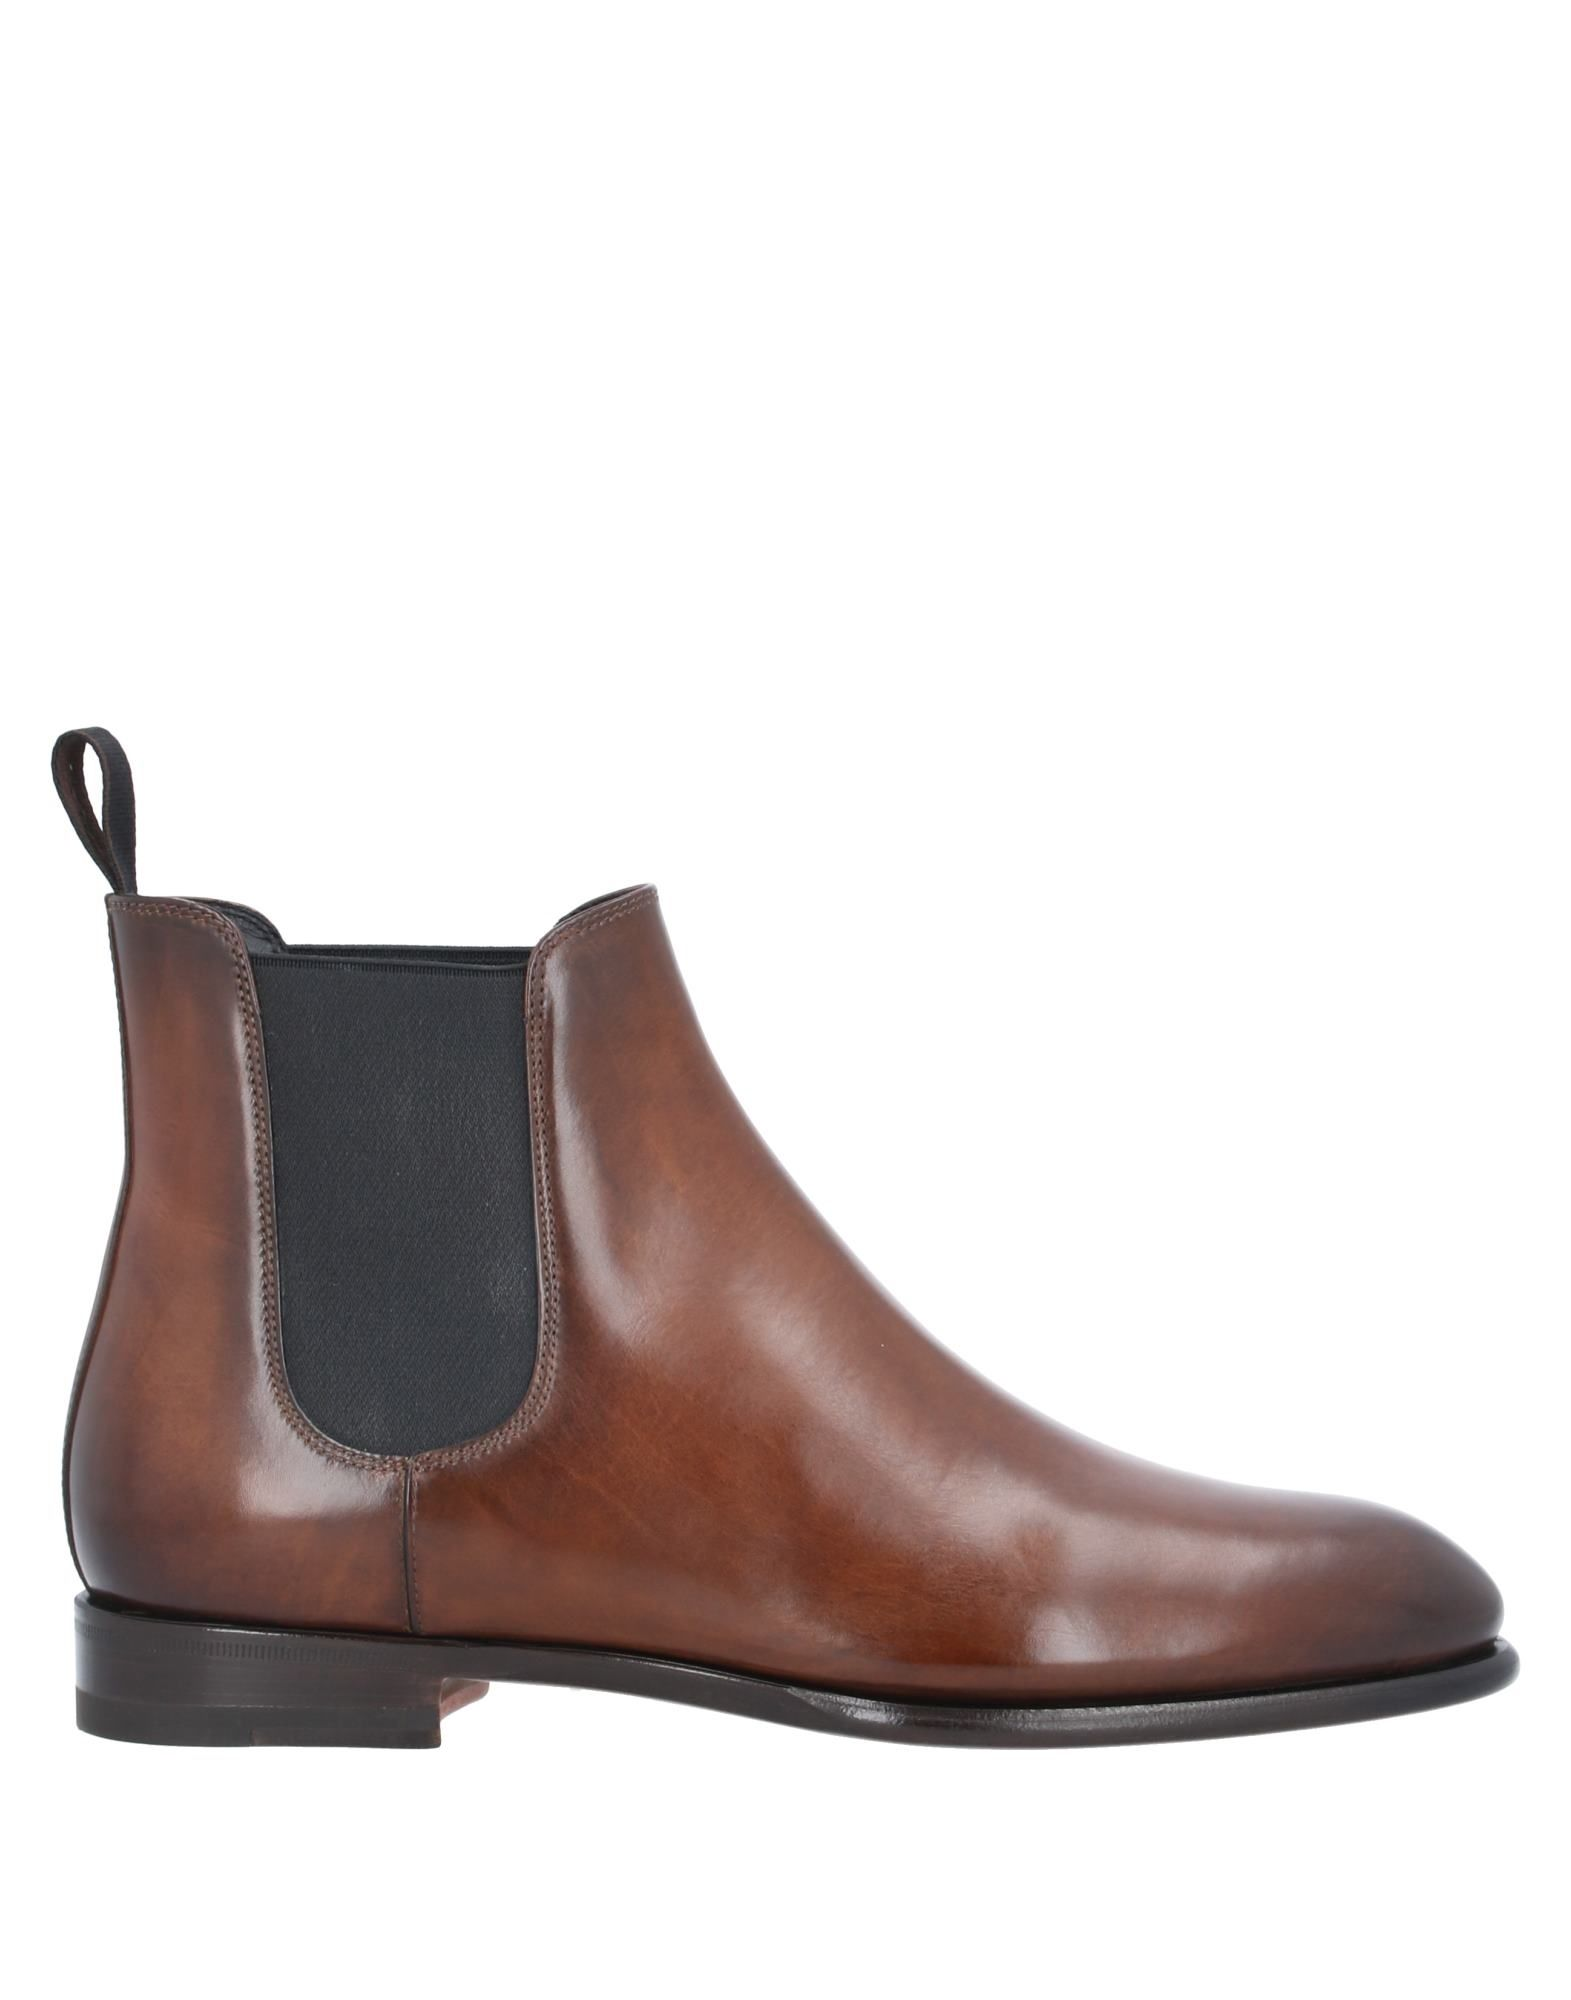 SANTONI Ankle boots. leather, no appliqués, solid color, elasticized gores, round toeline, square heel, leather lining, leather sole, contains non-textile parts of animal origin, large sized. Soft Leather